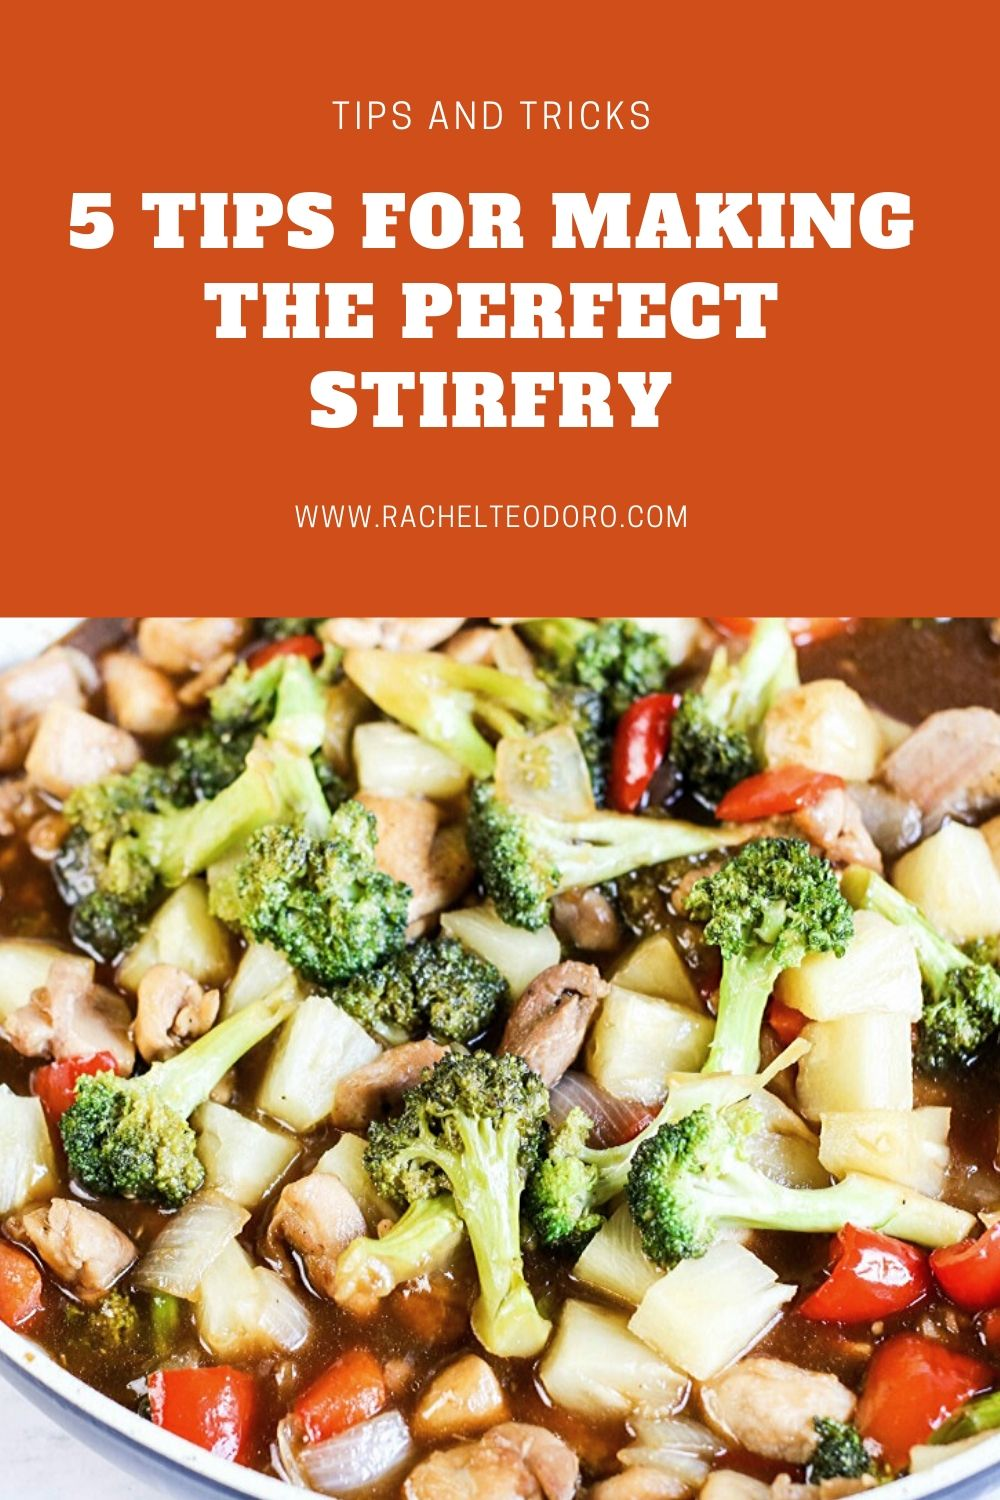 TIPS FOR MAKING THE PERFECT STIR FRY